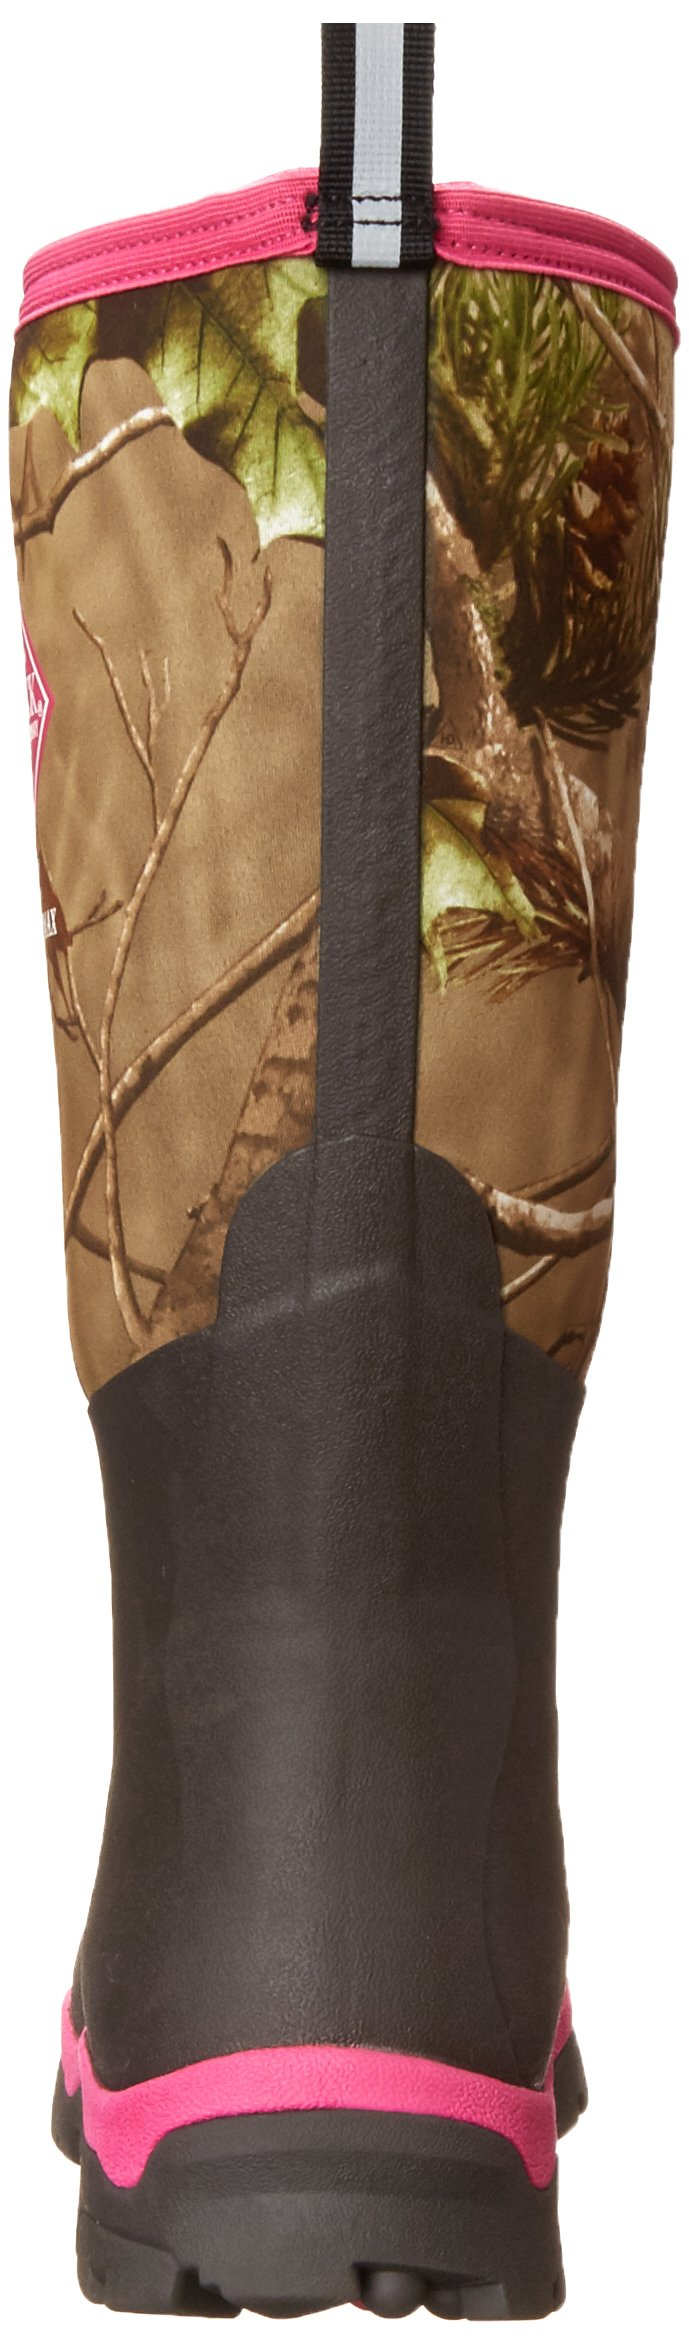 Muck Boot Womens Woody Pk Hunting Shoes, Bark/Realtree/Hot Pink, 8 US/8-8.5 M US by Muck Boot (Image #2)